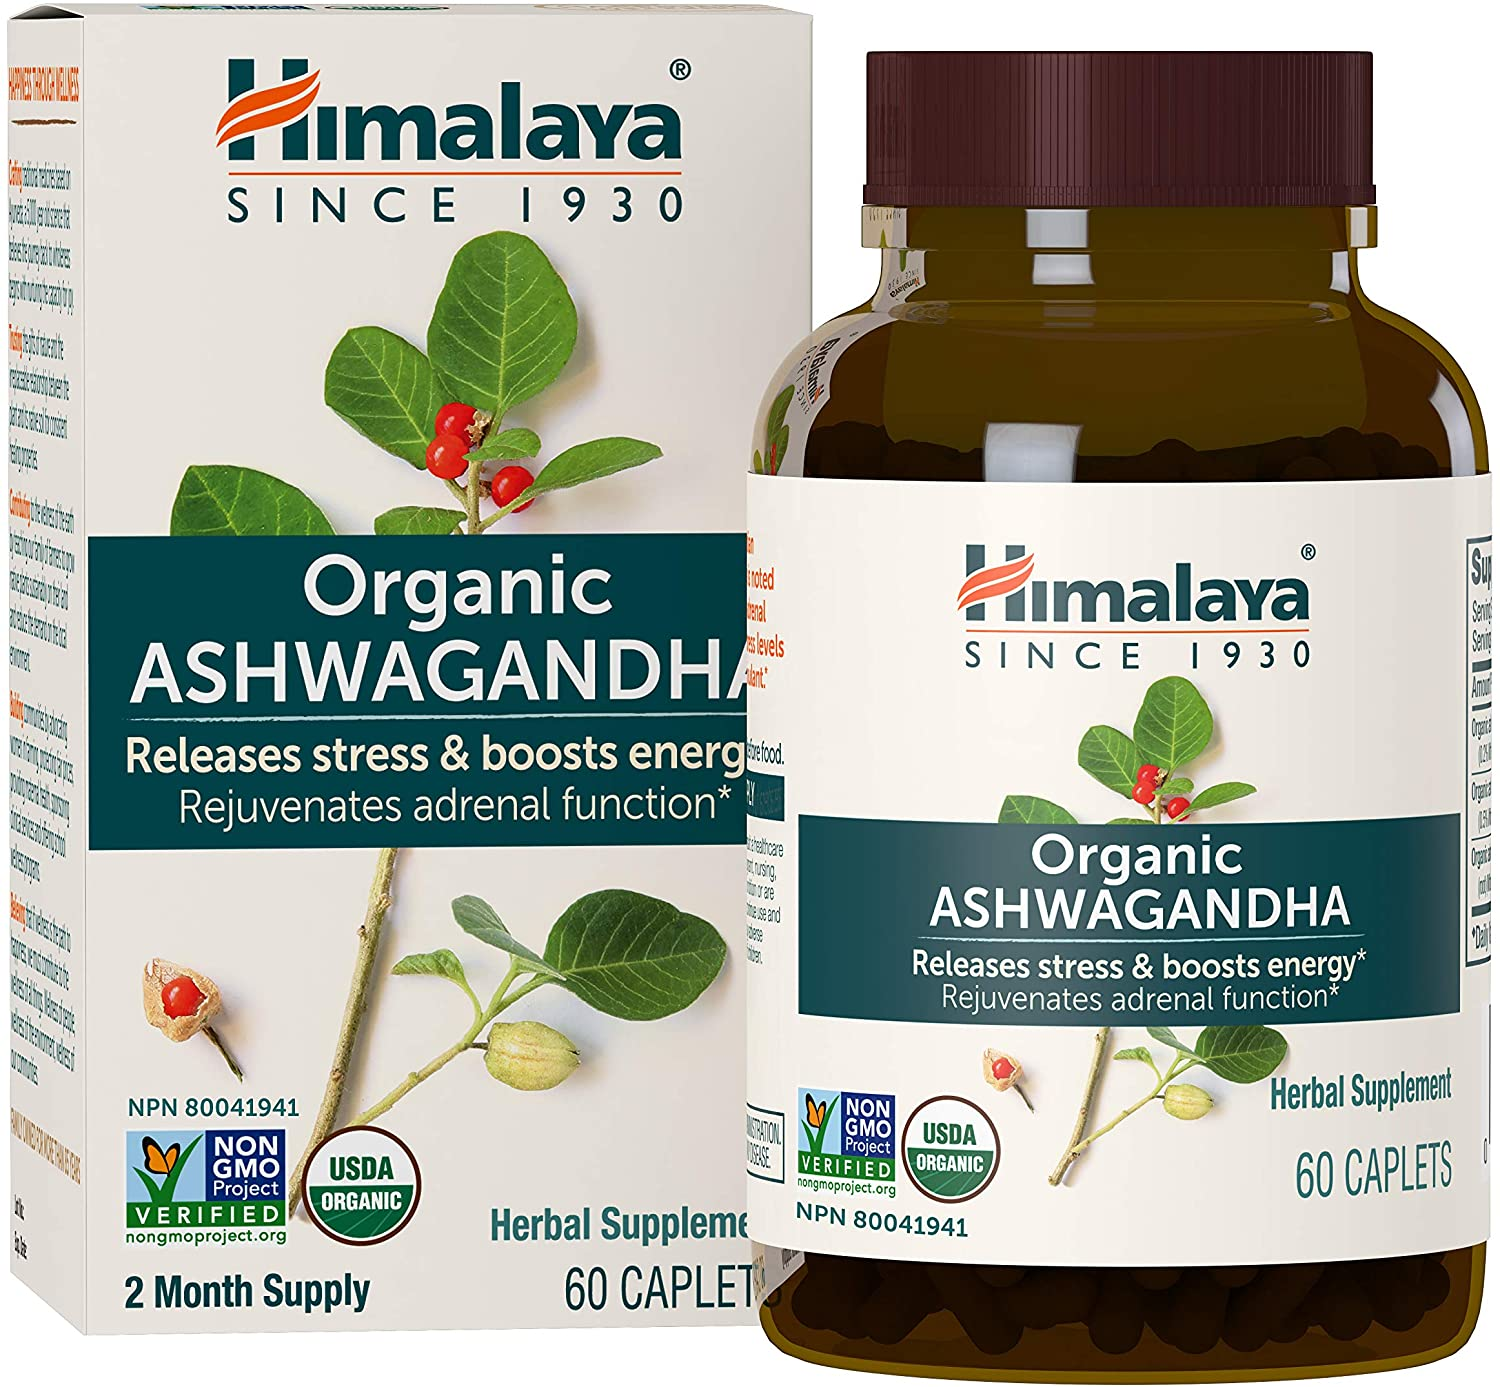 Ashwagandha Online Products: Do they provide the same benefits as the Herb itself?